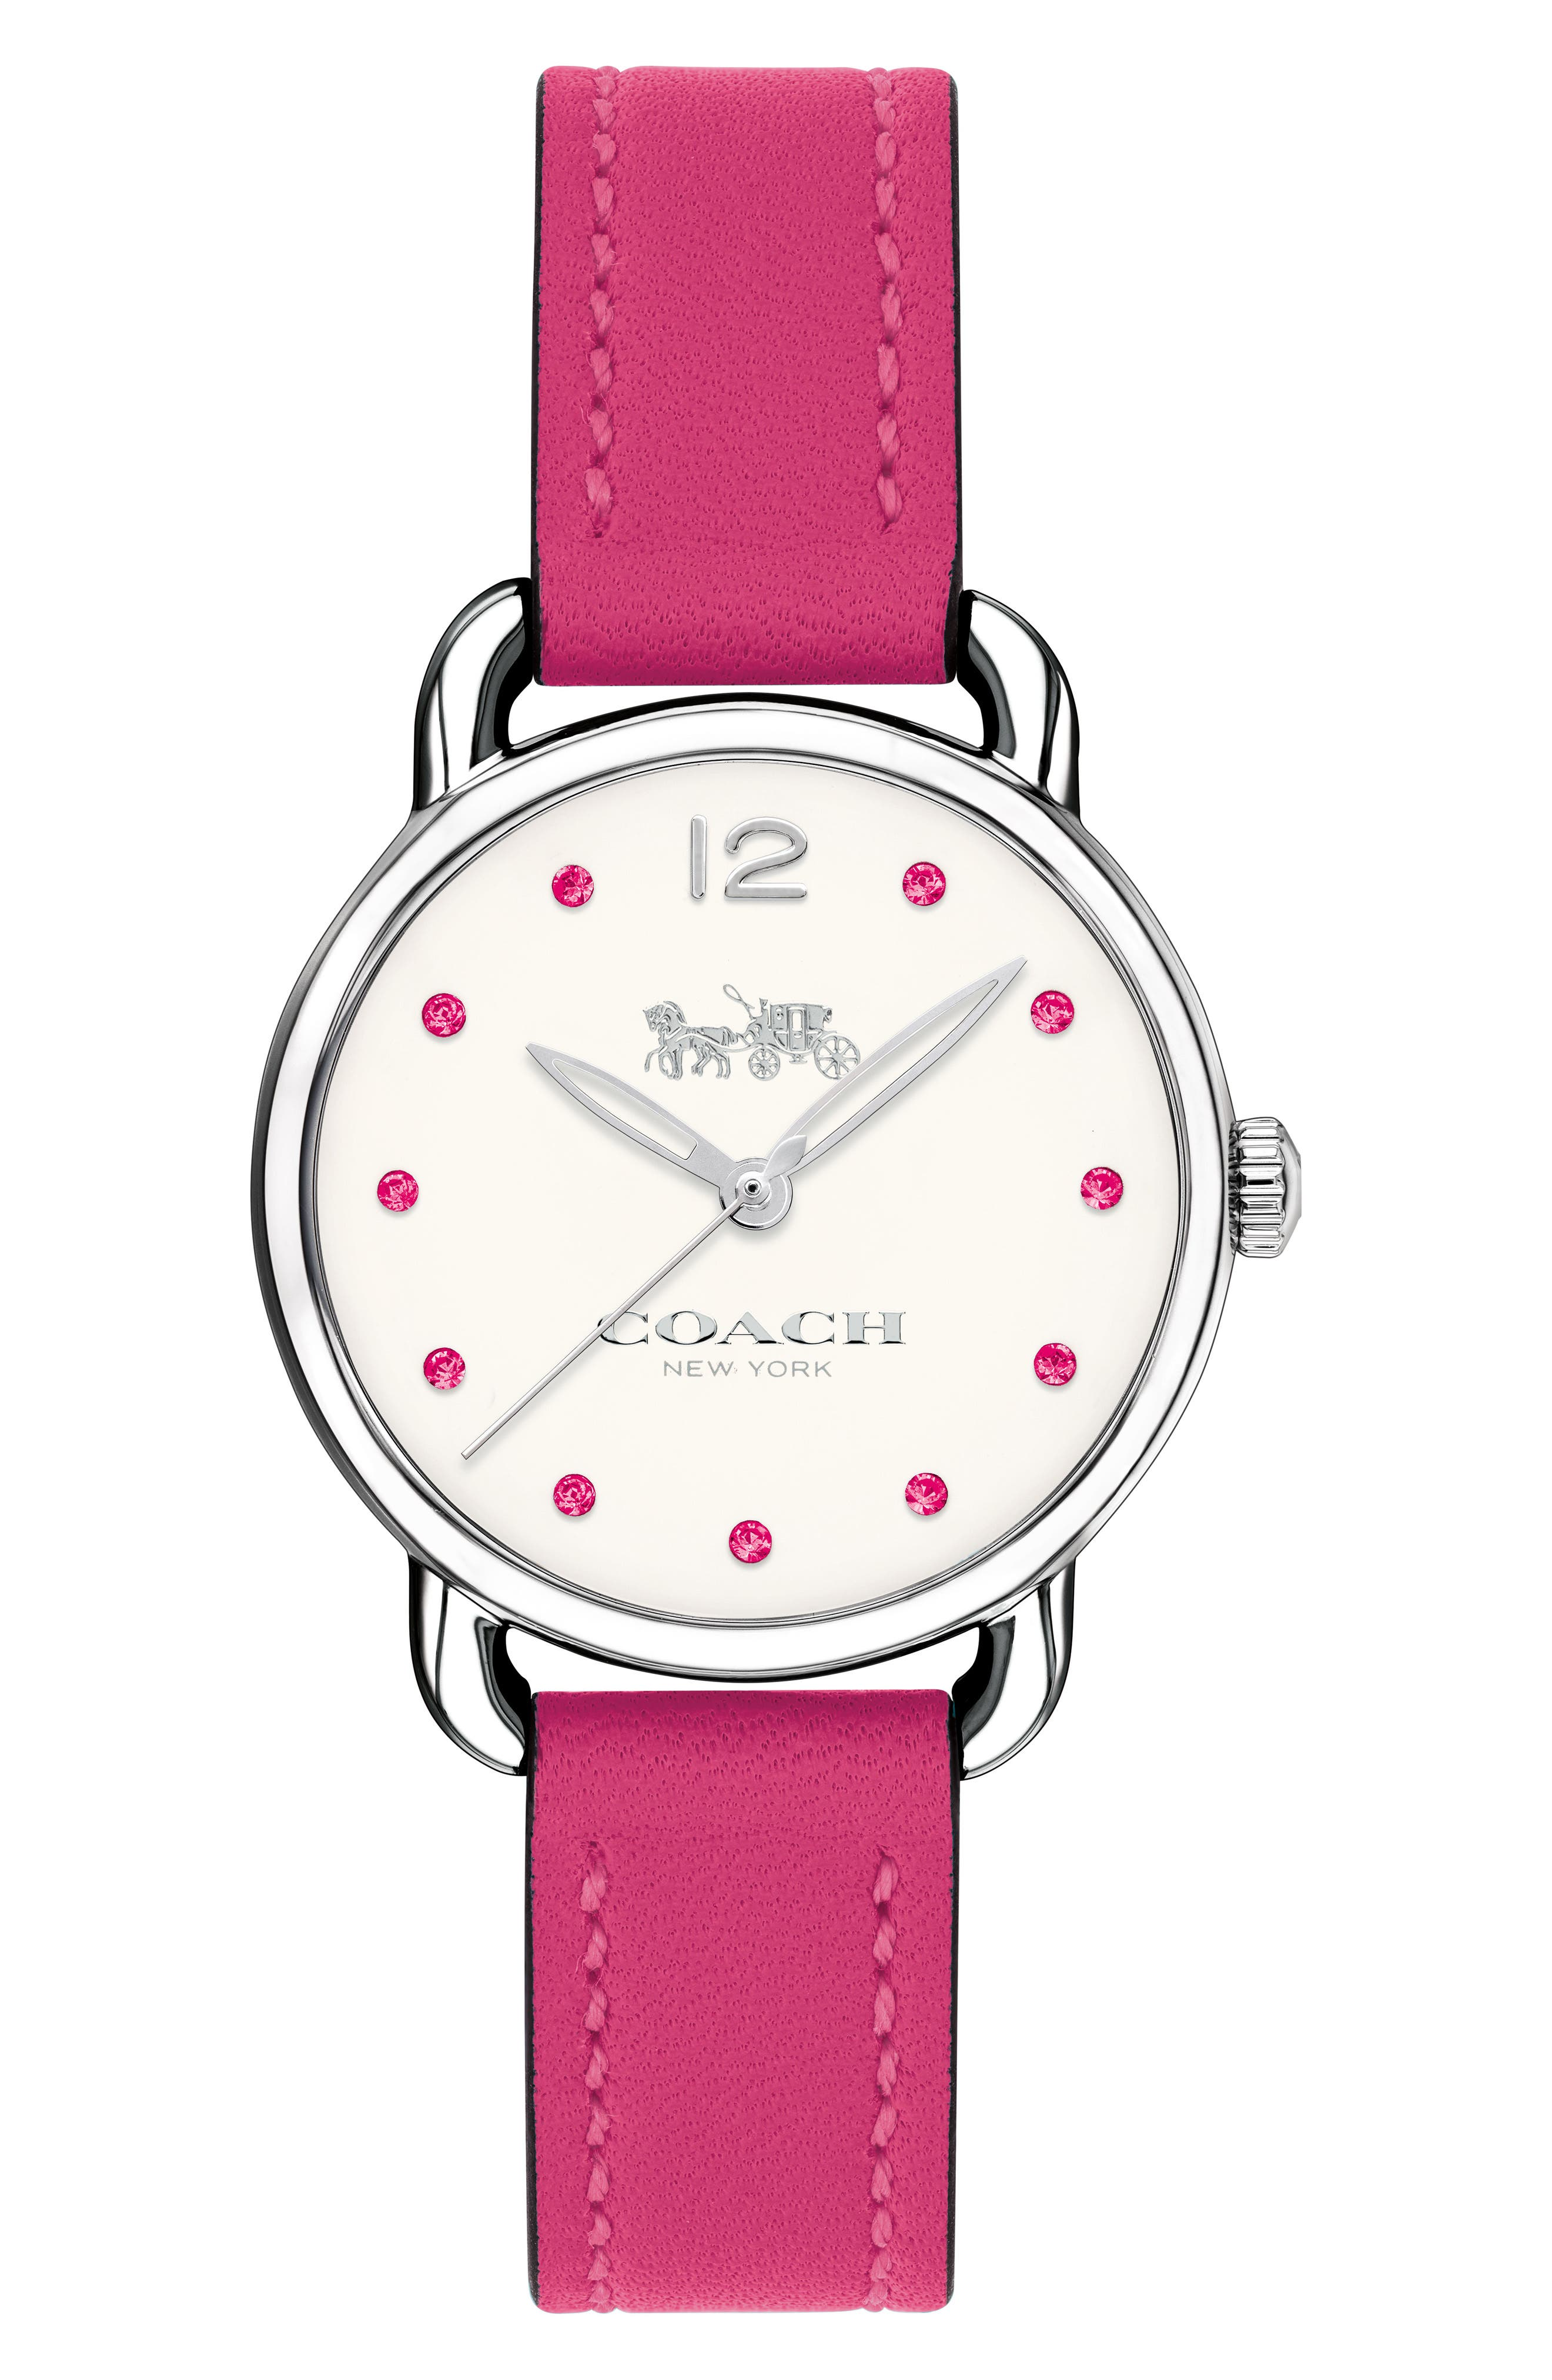 Delancey Crystal Accent Leather Strap Watch, 28mm,                         Main,                         color, Pink/ White/ Silver